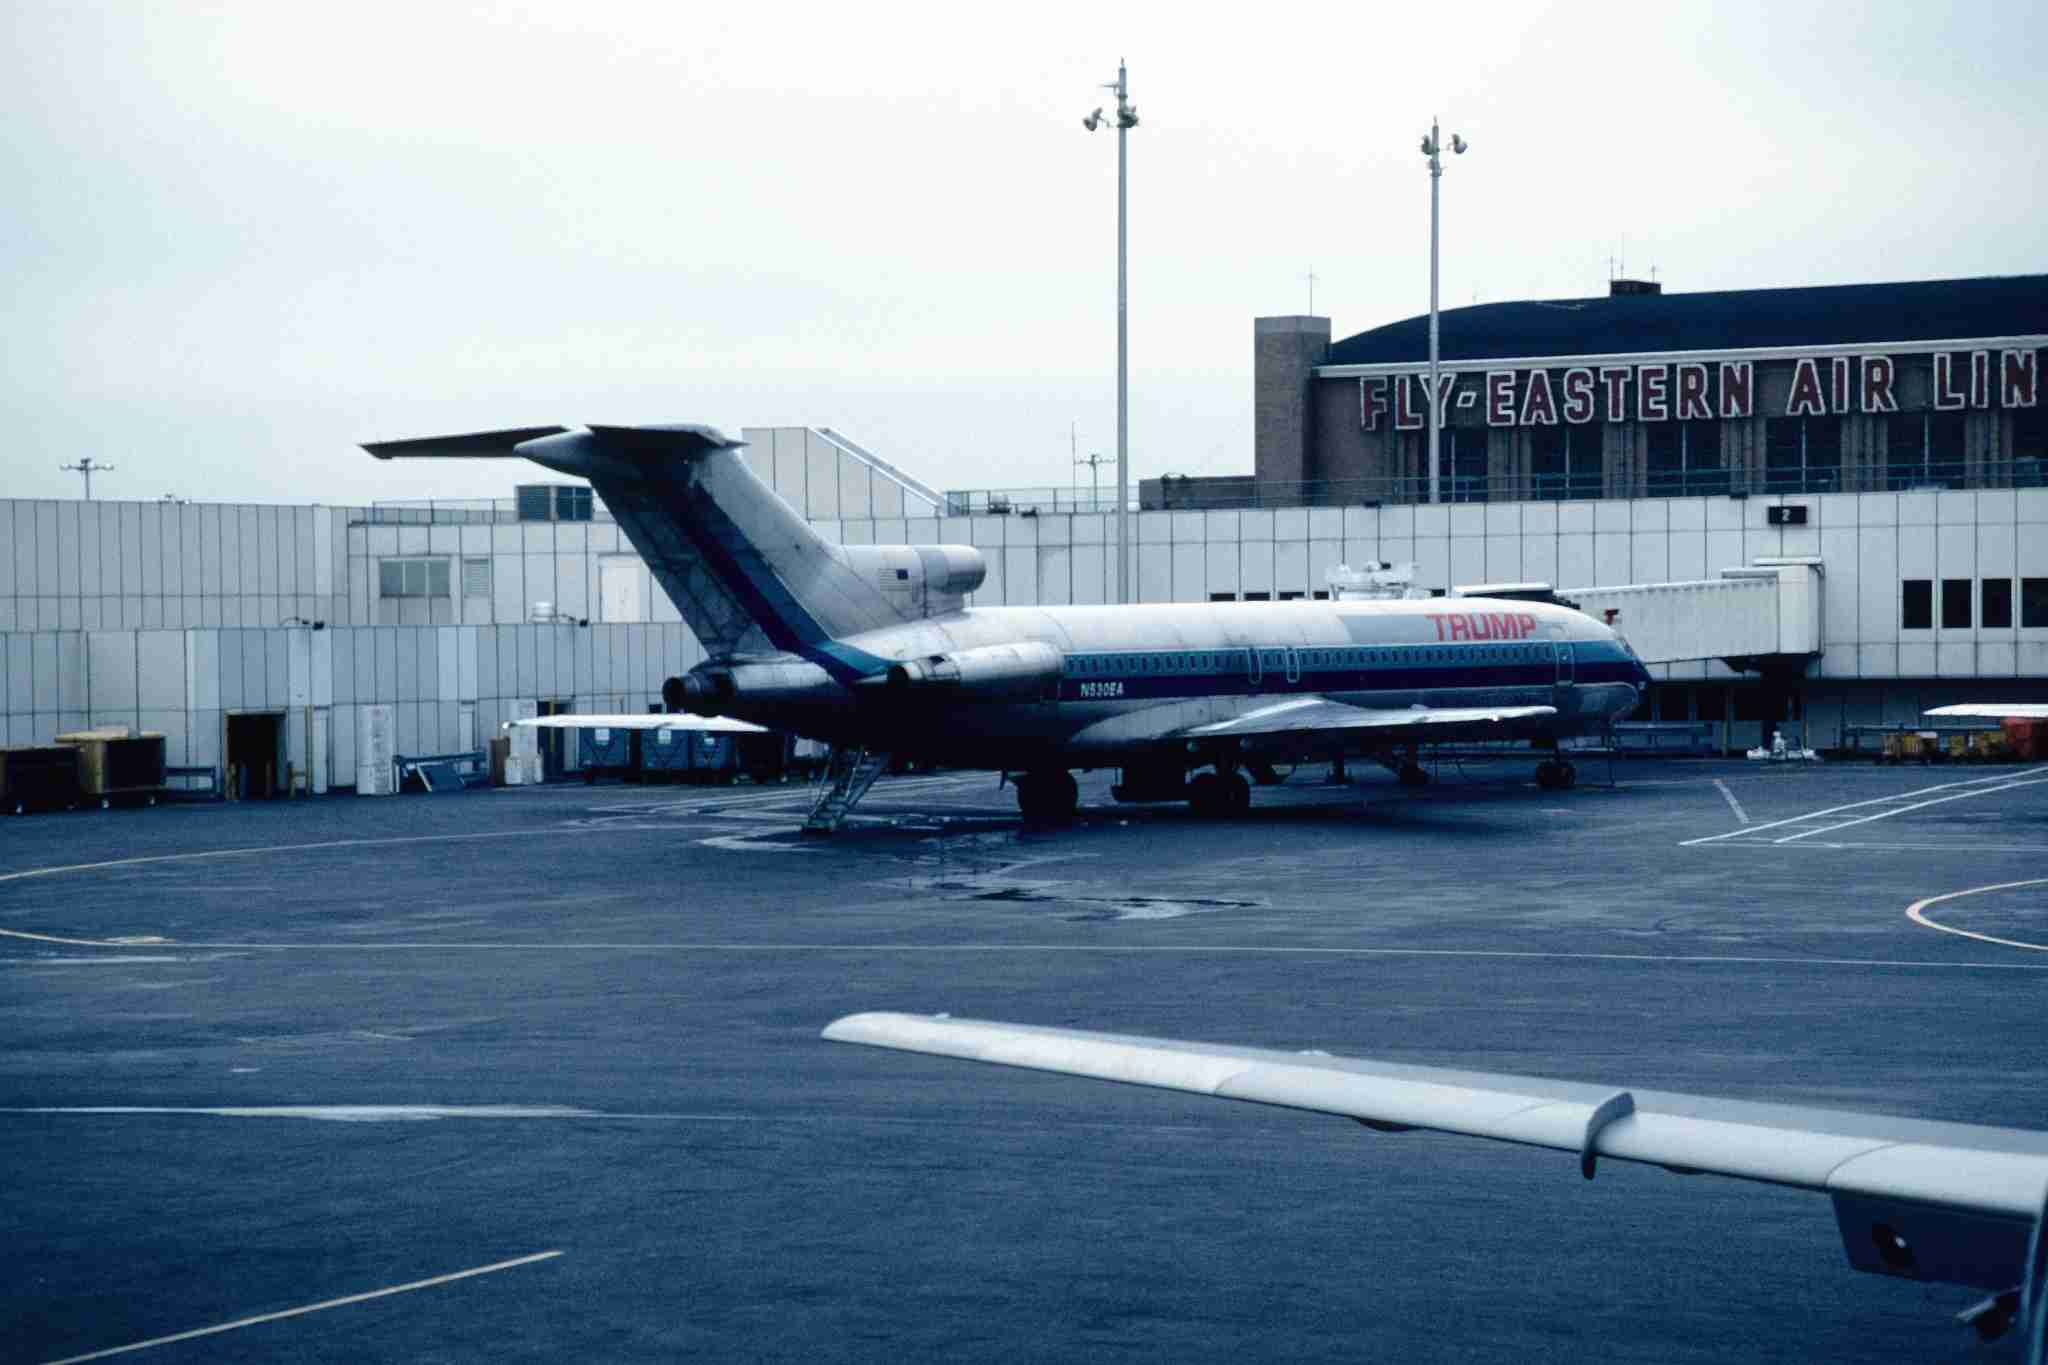 A Trump Shuttle Boeing 727 with the rear stairs deployed at New York LaGuardia. (Photo by FotoNoir/Wikimedia Commons)